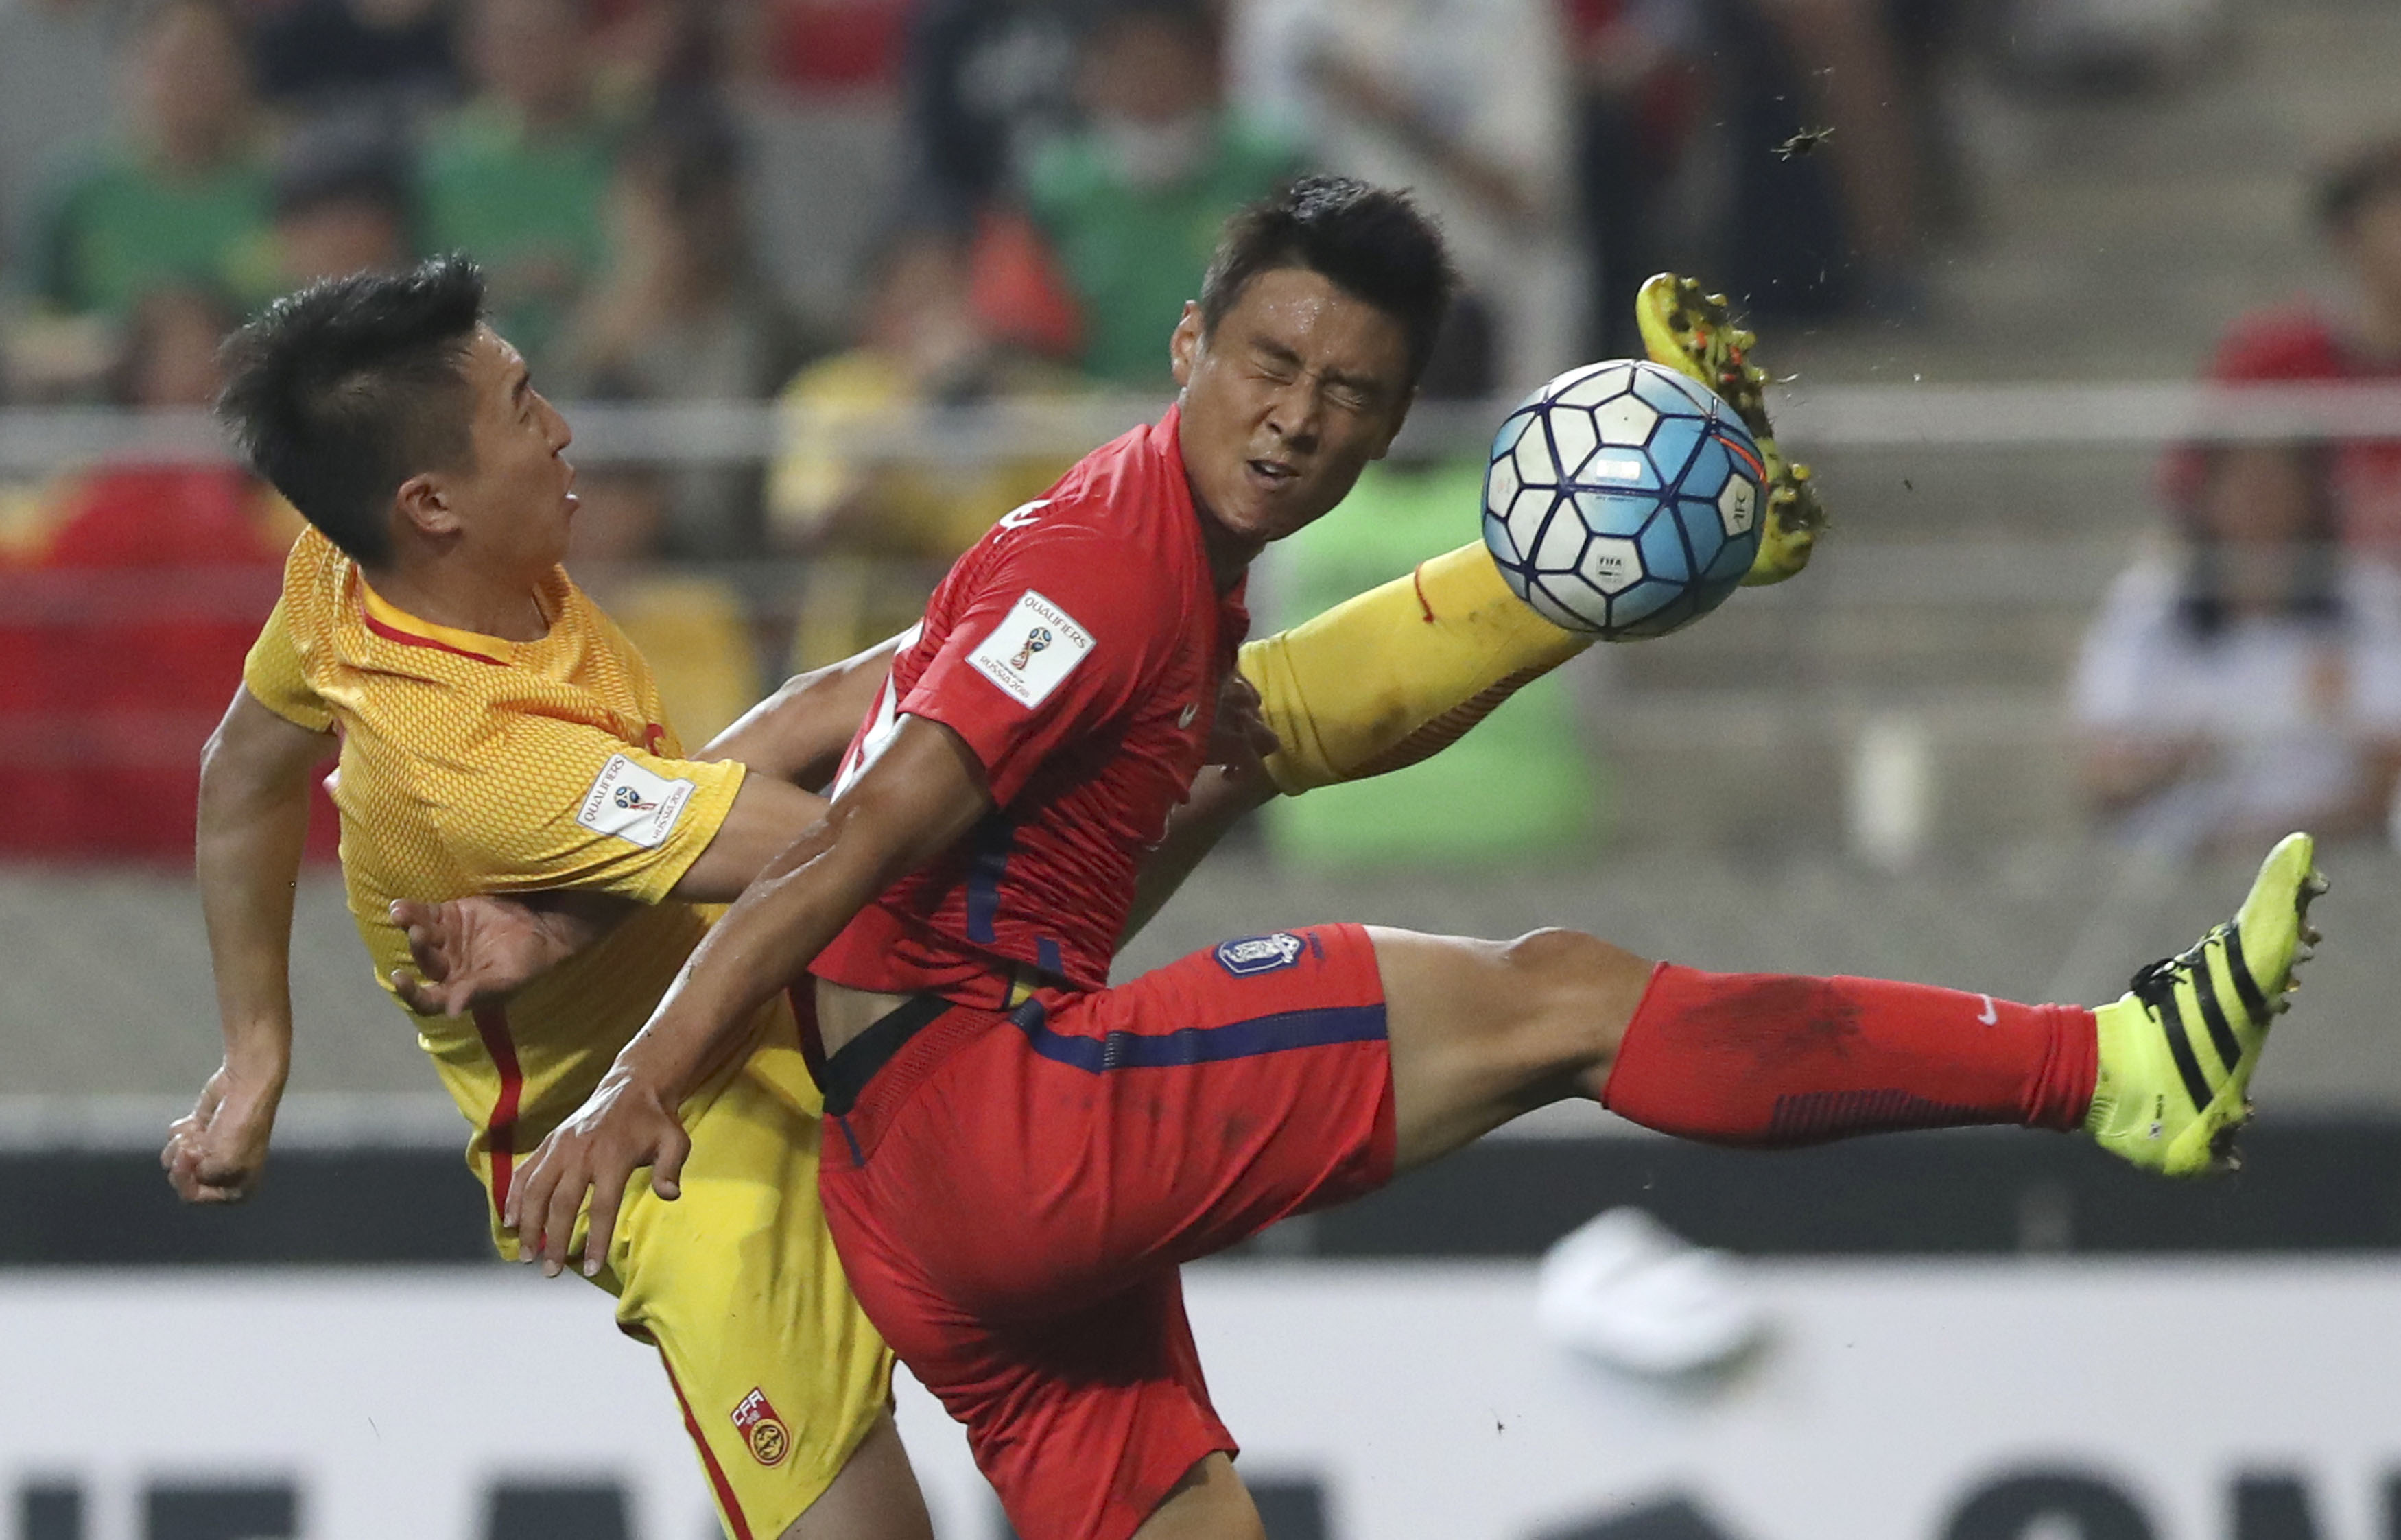 South Korea's Koo Ja-cheol (right) fights for the ball against China's Ren Hang (left) during the soccer match for the 2018 FIFA World Cup qualifier at Seoul World Cup Stadium in Seoul, South Korea, on Thursday, September 1, 2016. Photo: AP